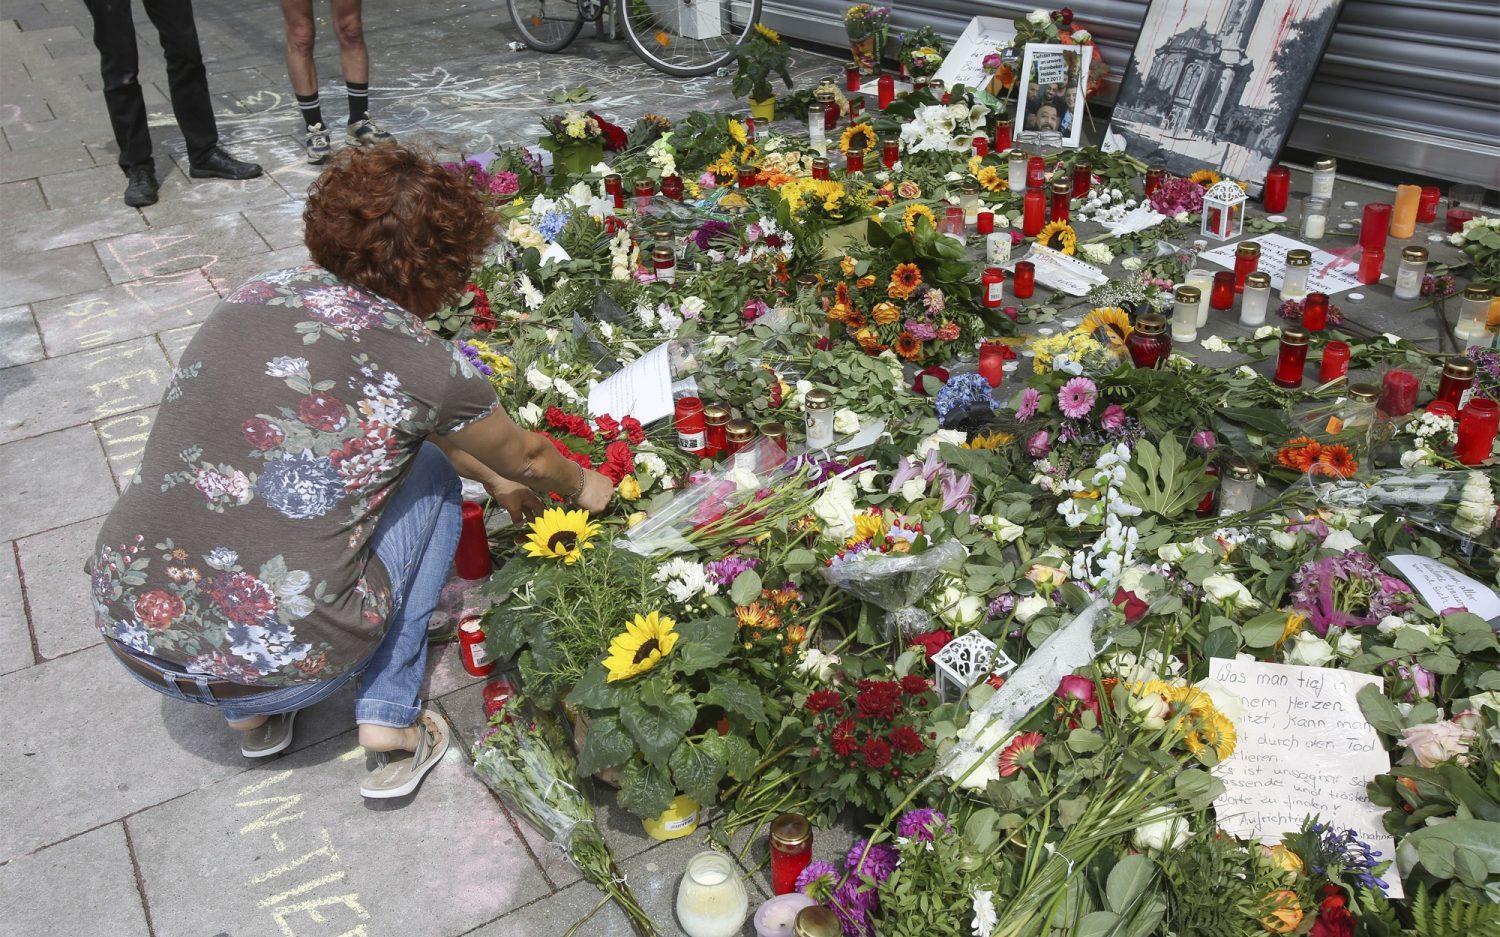 Prosecutors: German Christians targeted in July attack